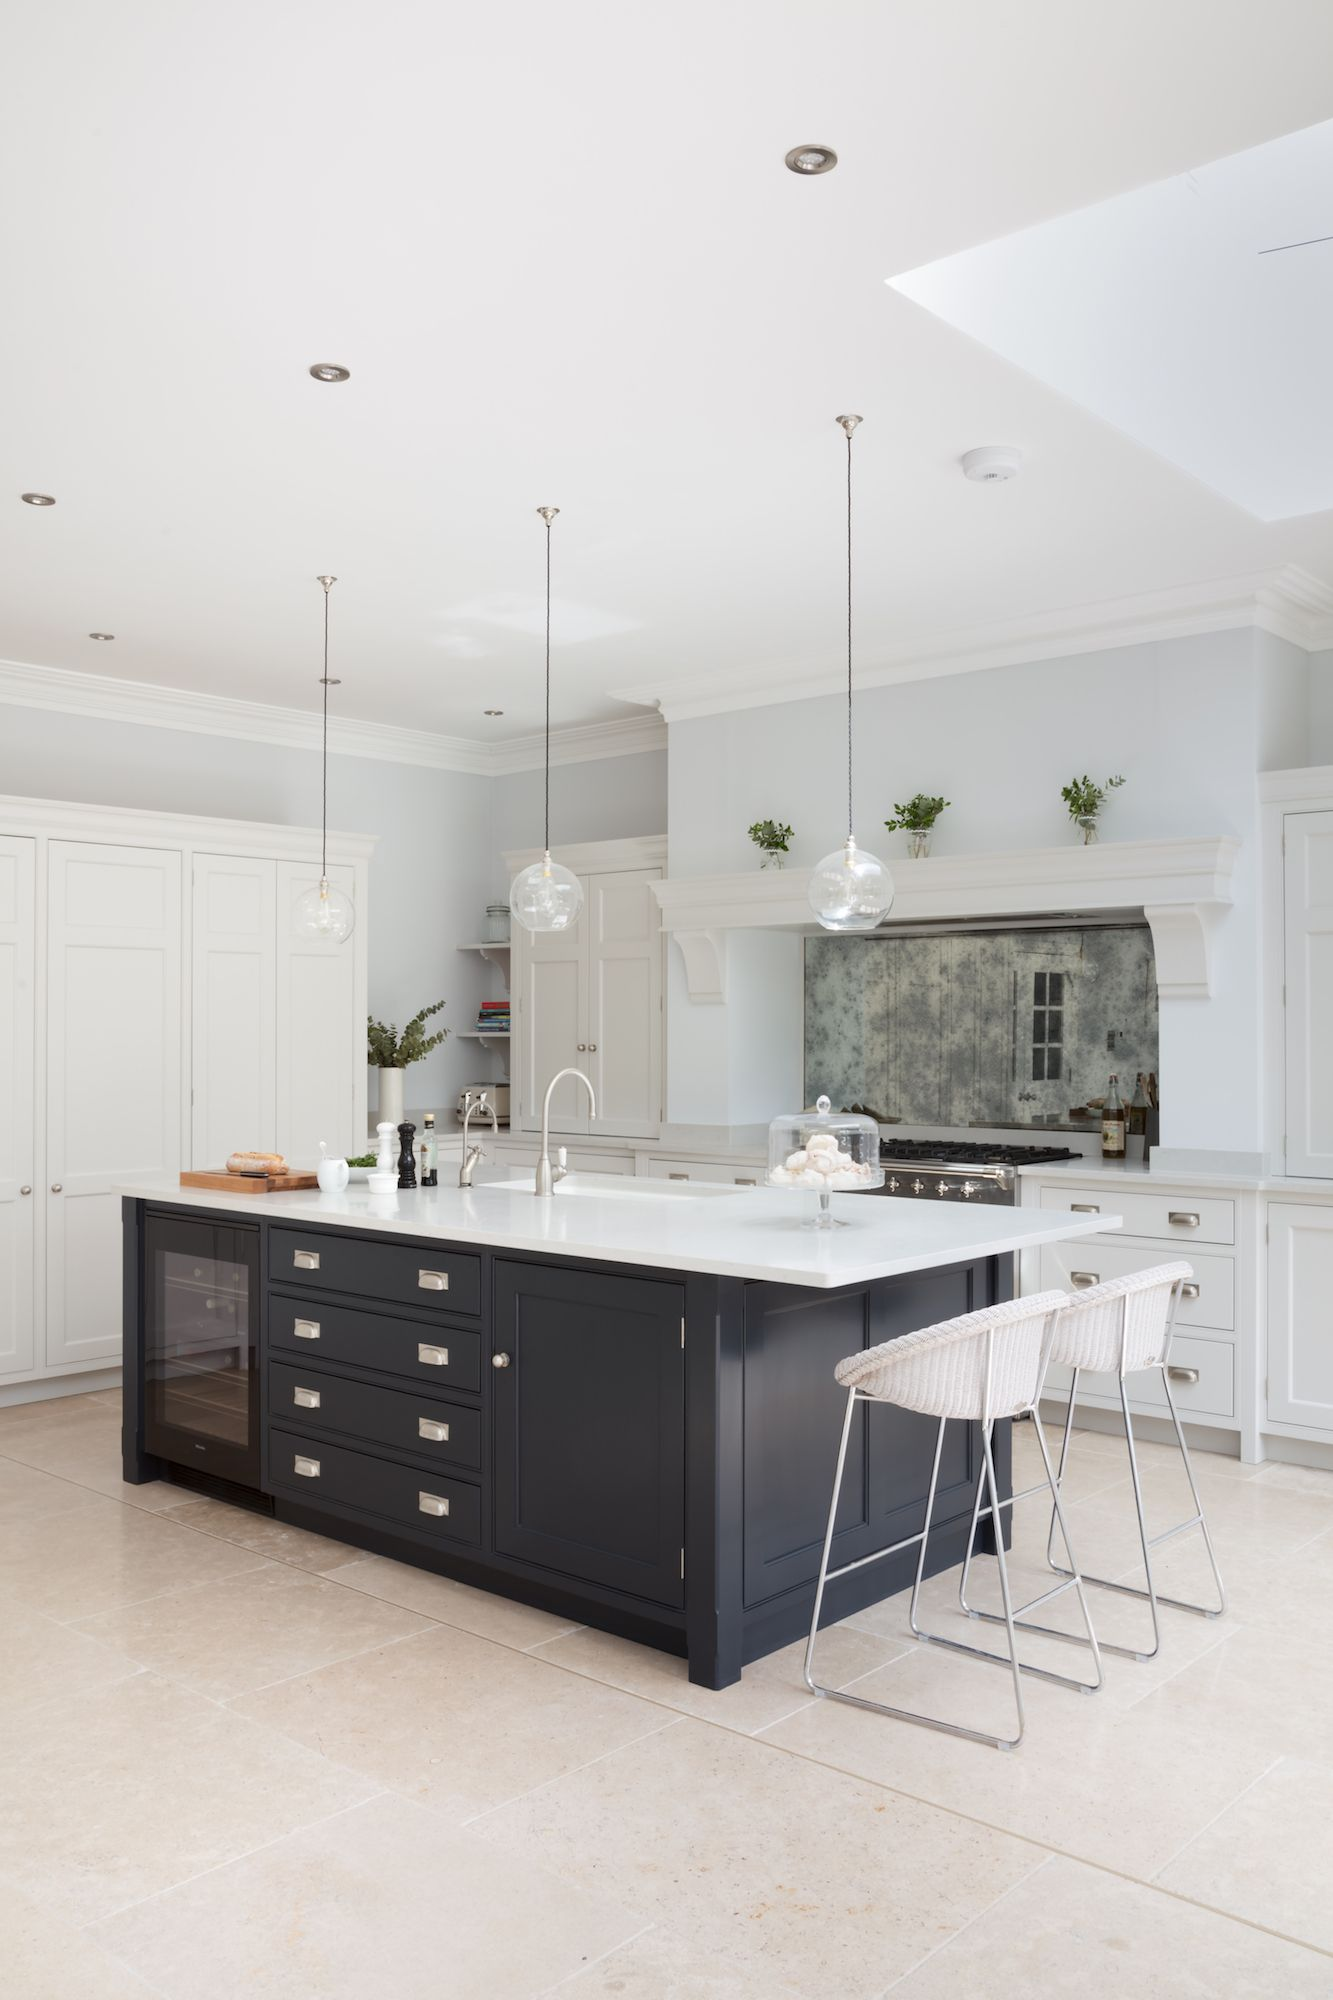 Open plan luxury kitchen london humphrey munson kitchens